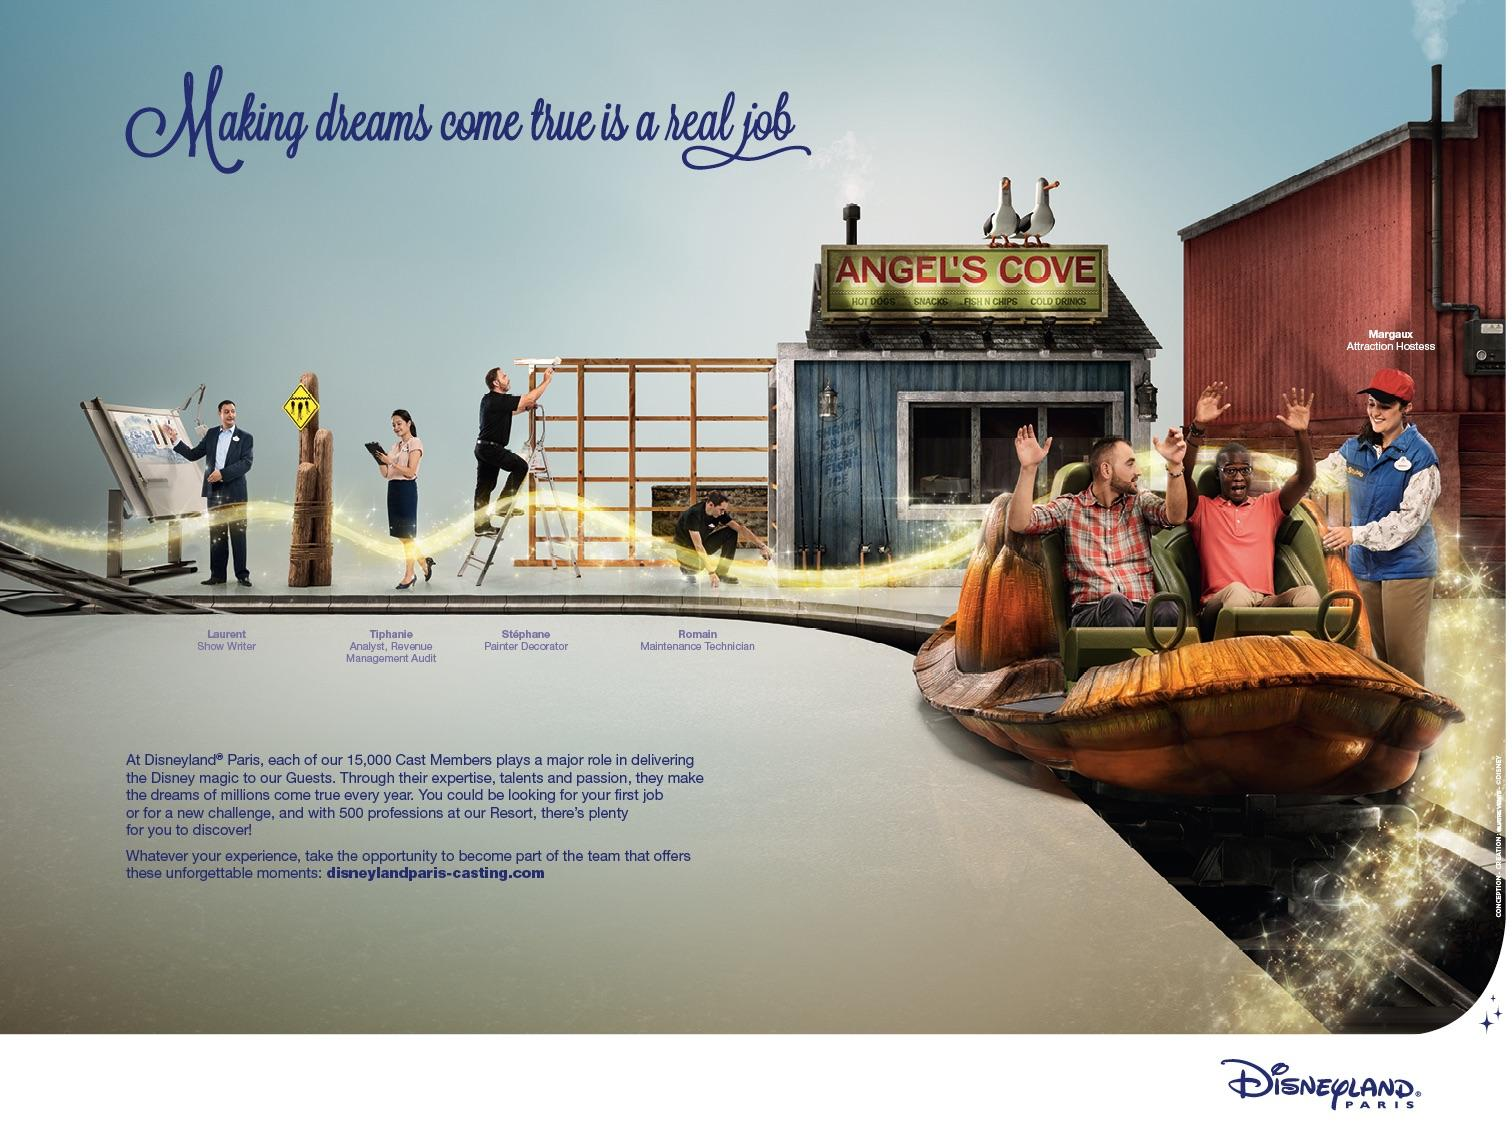 Disneyland Print Advert By Quatre Vents: Real job, 3 | Ads of the World™